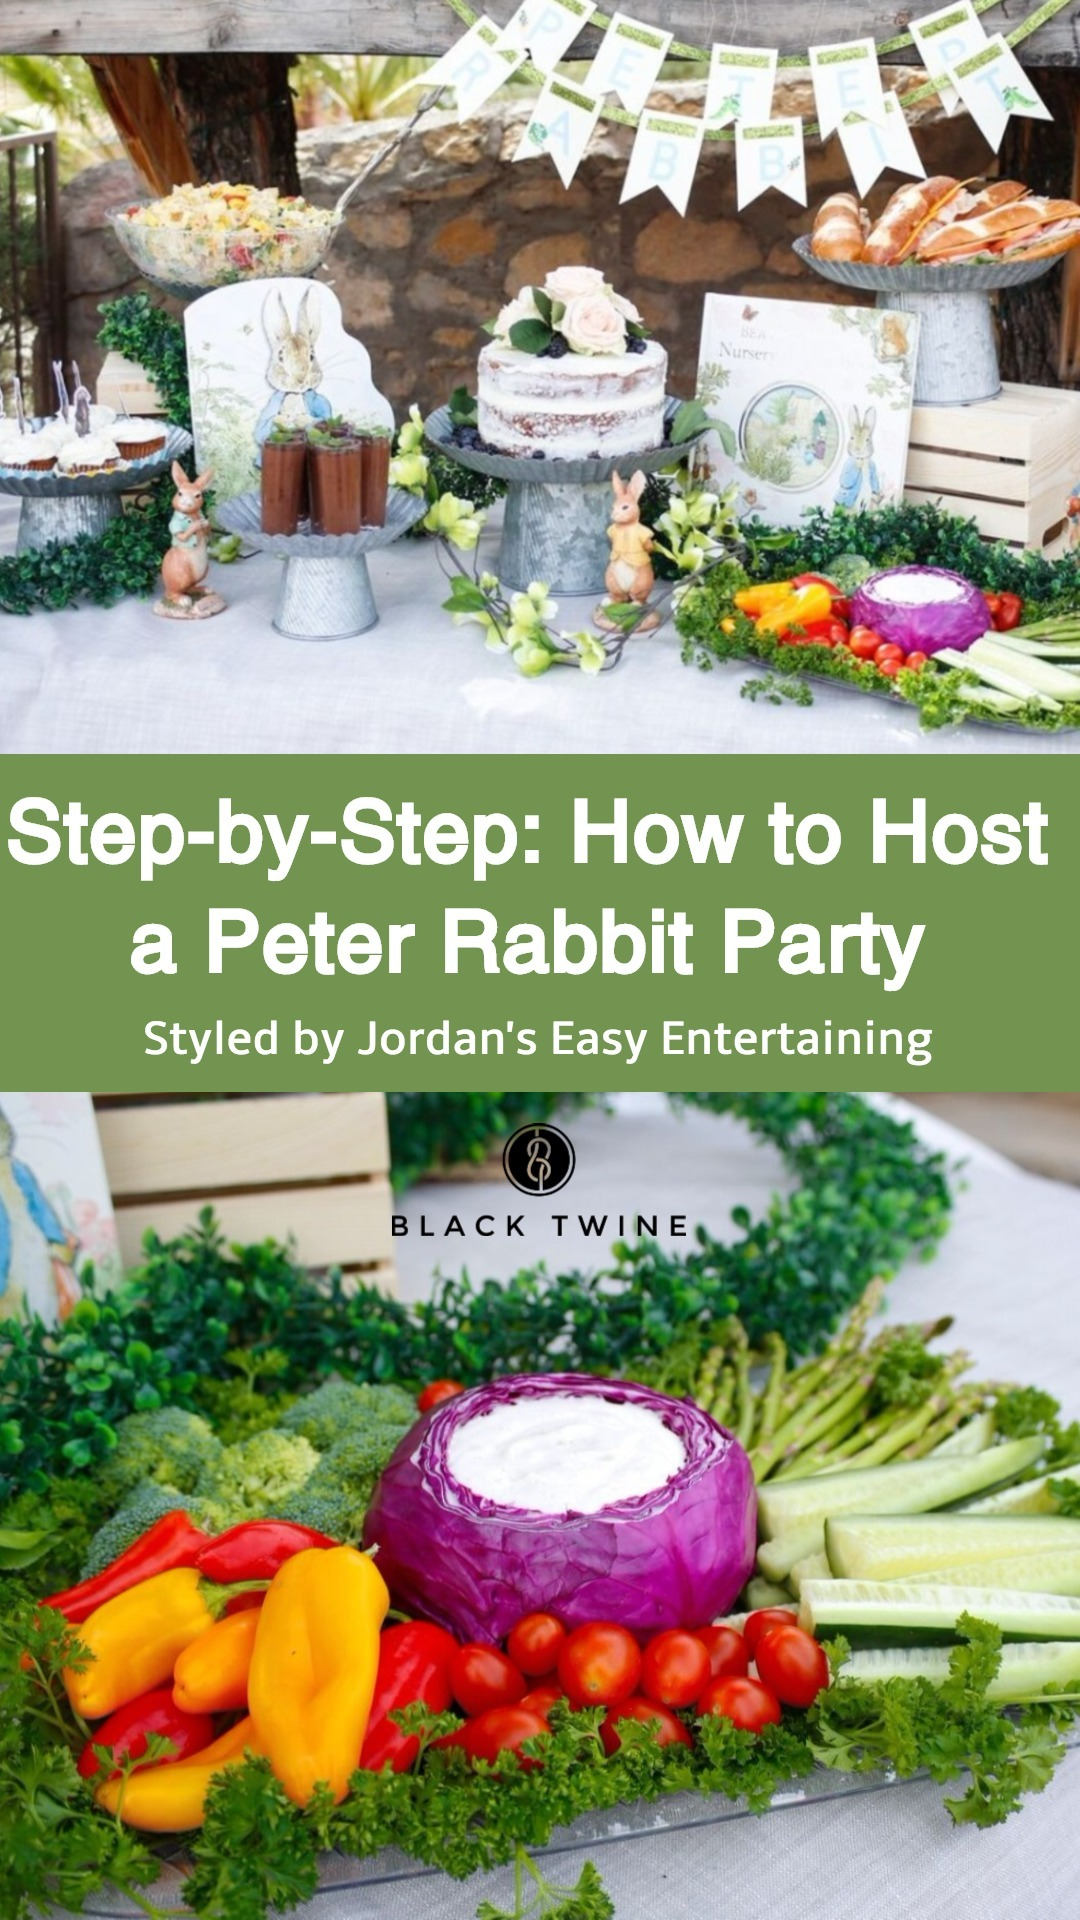 Step by step guide to planning a Peter Rabbit party with Jordan's Easy Entertaining